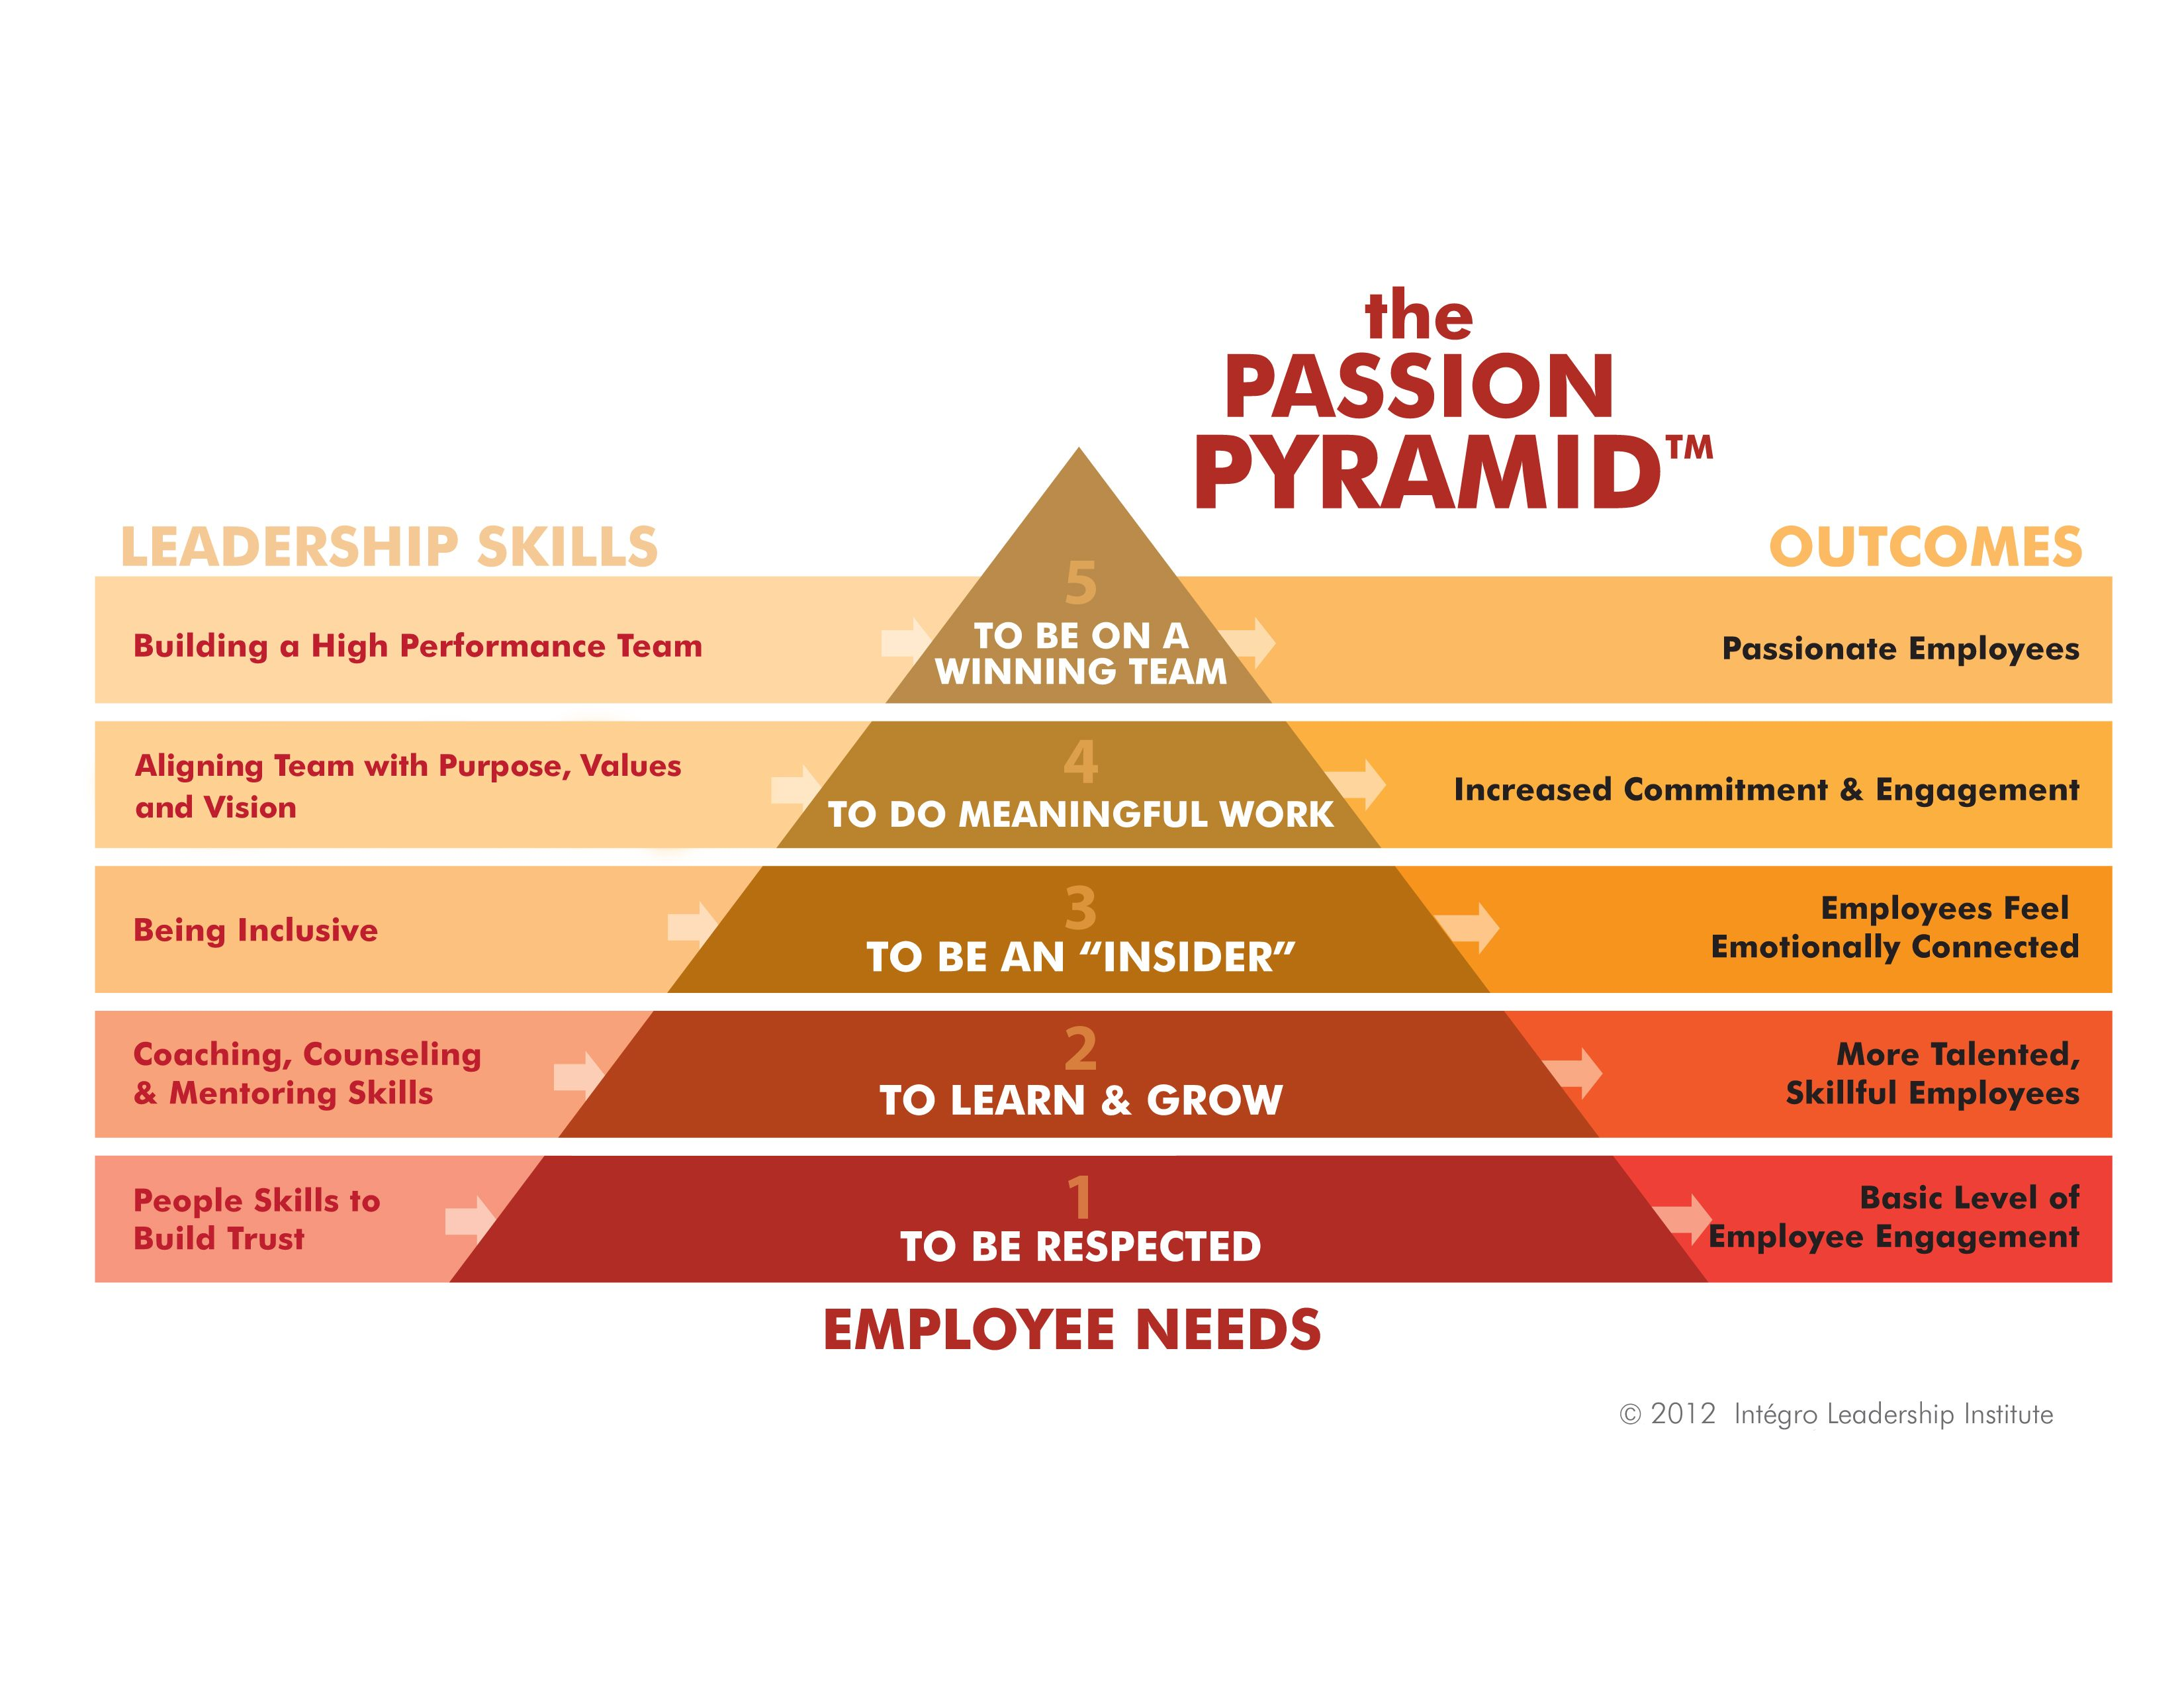 best images about leadership and future of work 17 best images about leadership and future of work management tips gary hamel and trends